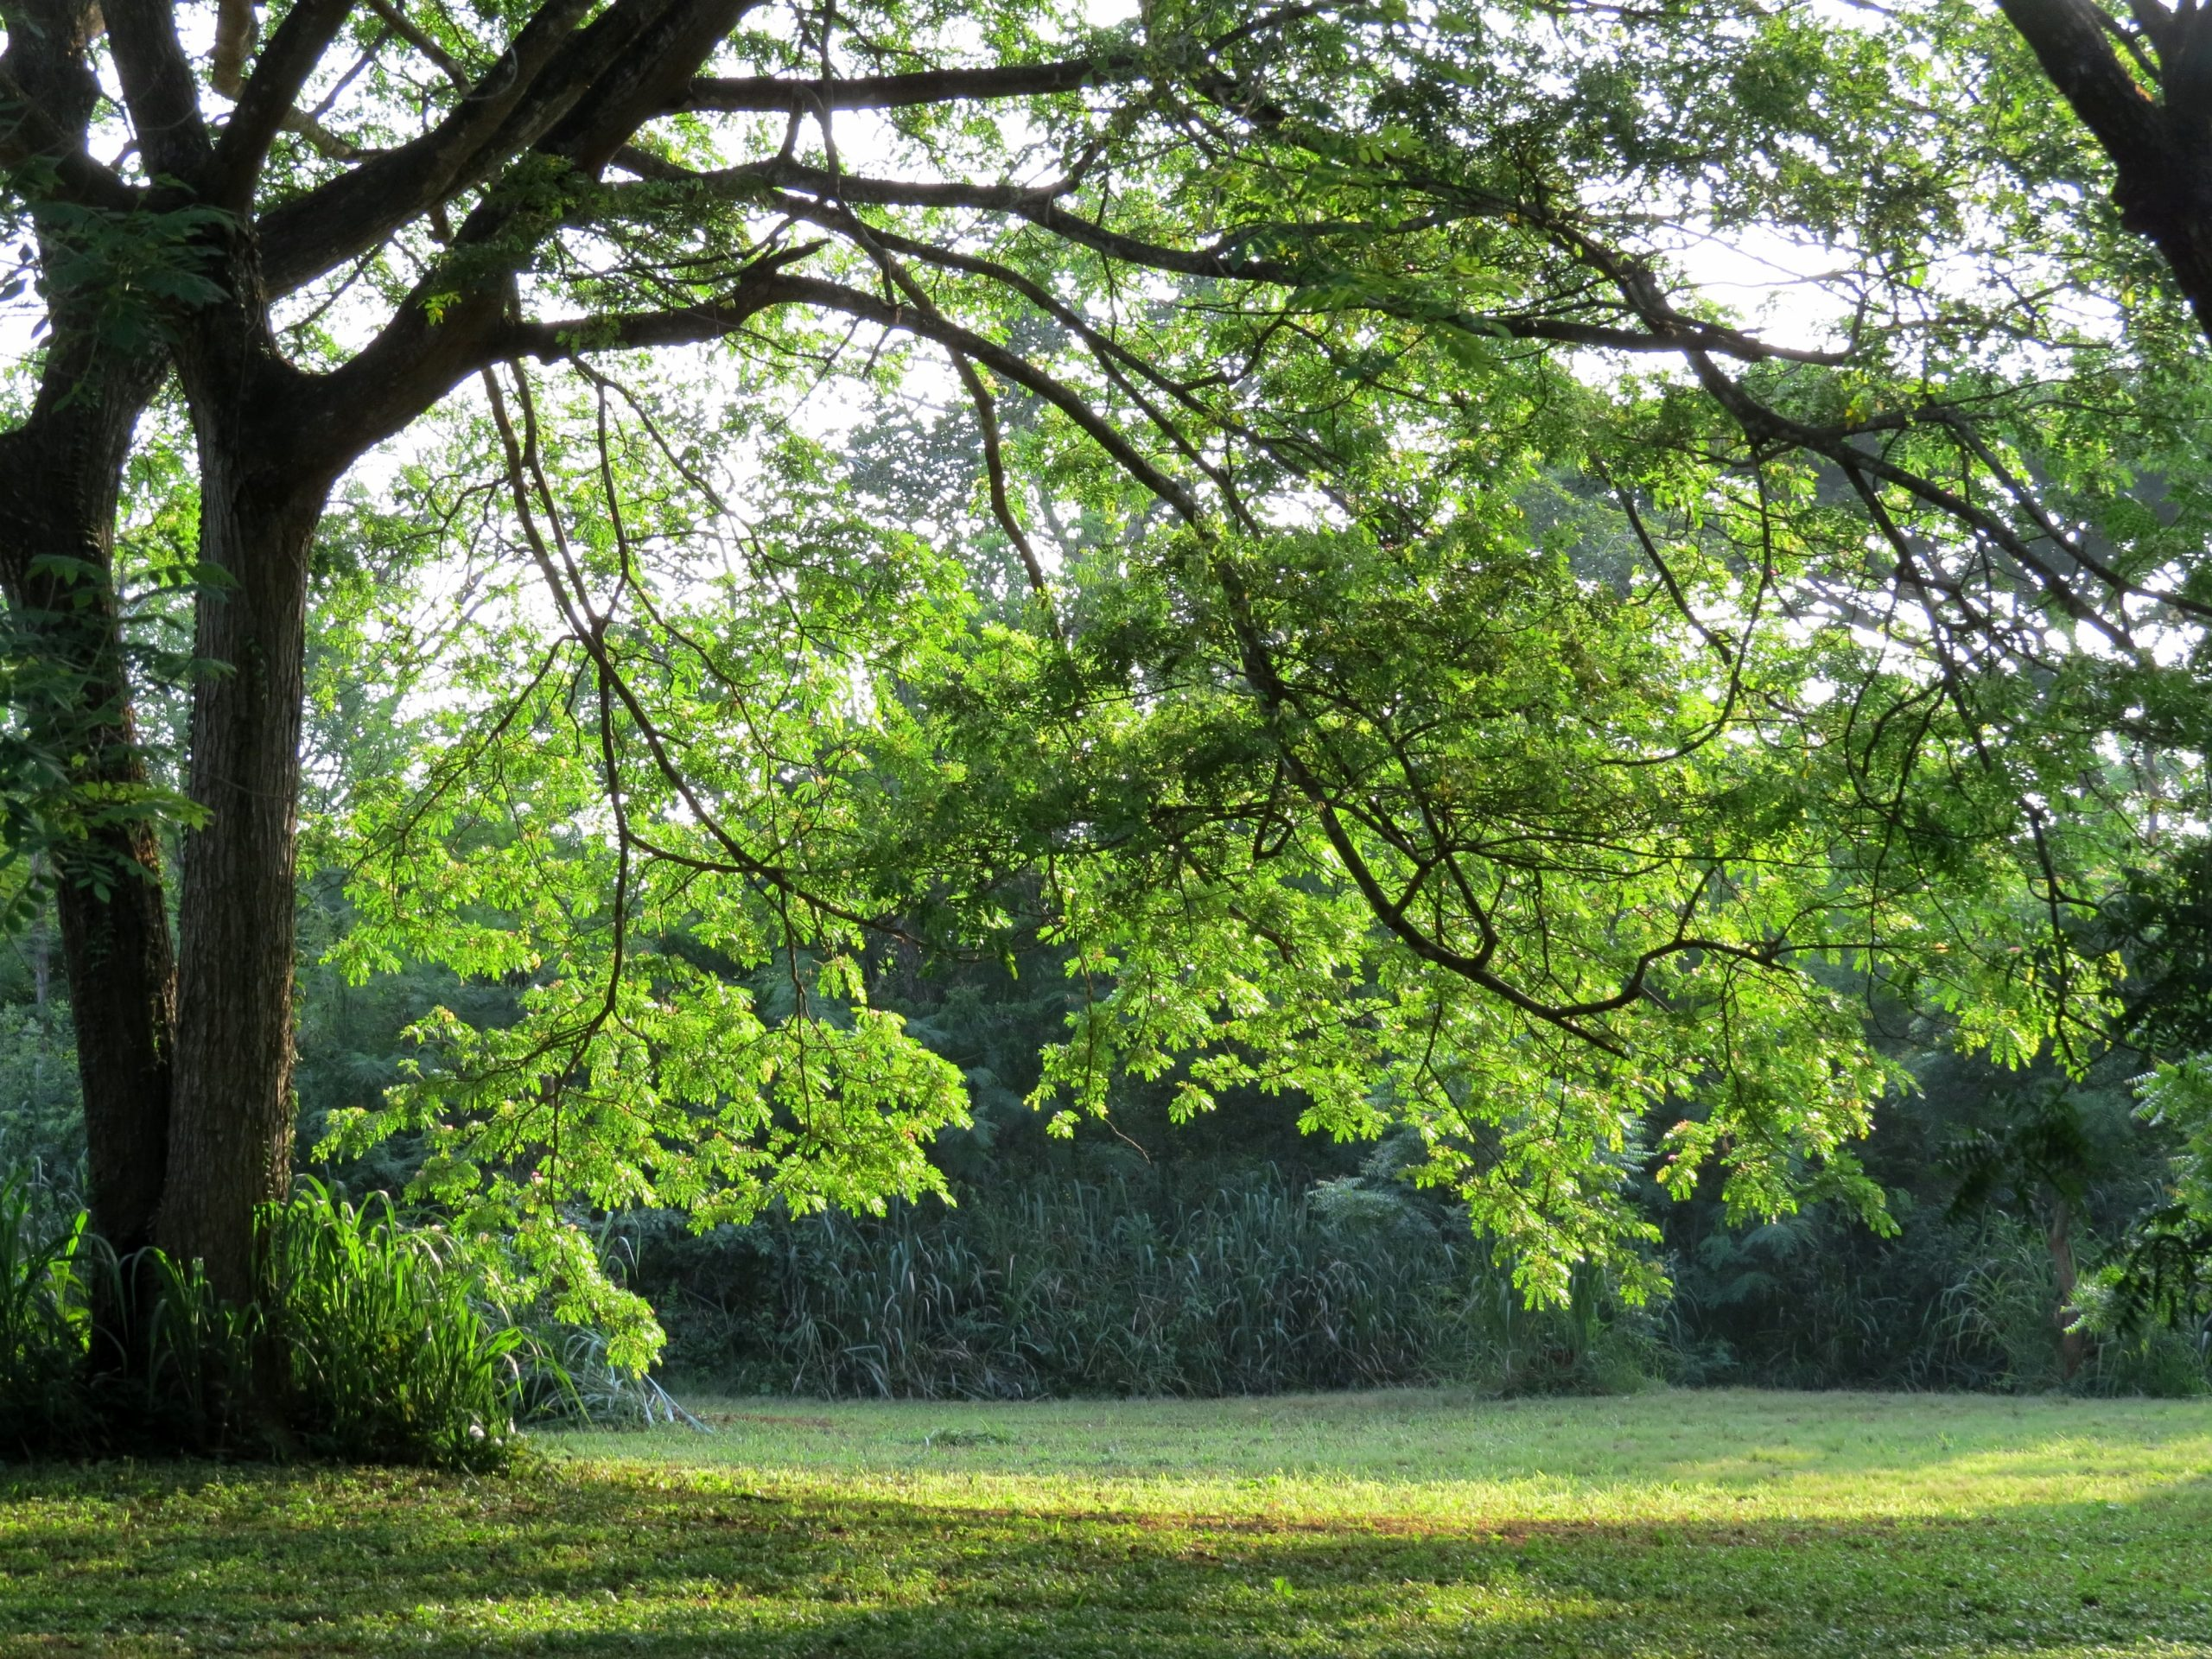 4 Methods to Boost Your Lawn's Appearance